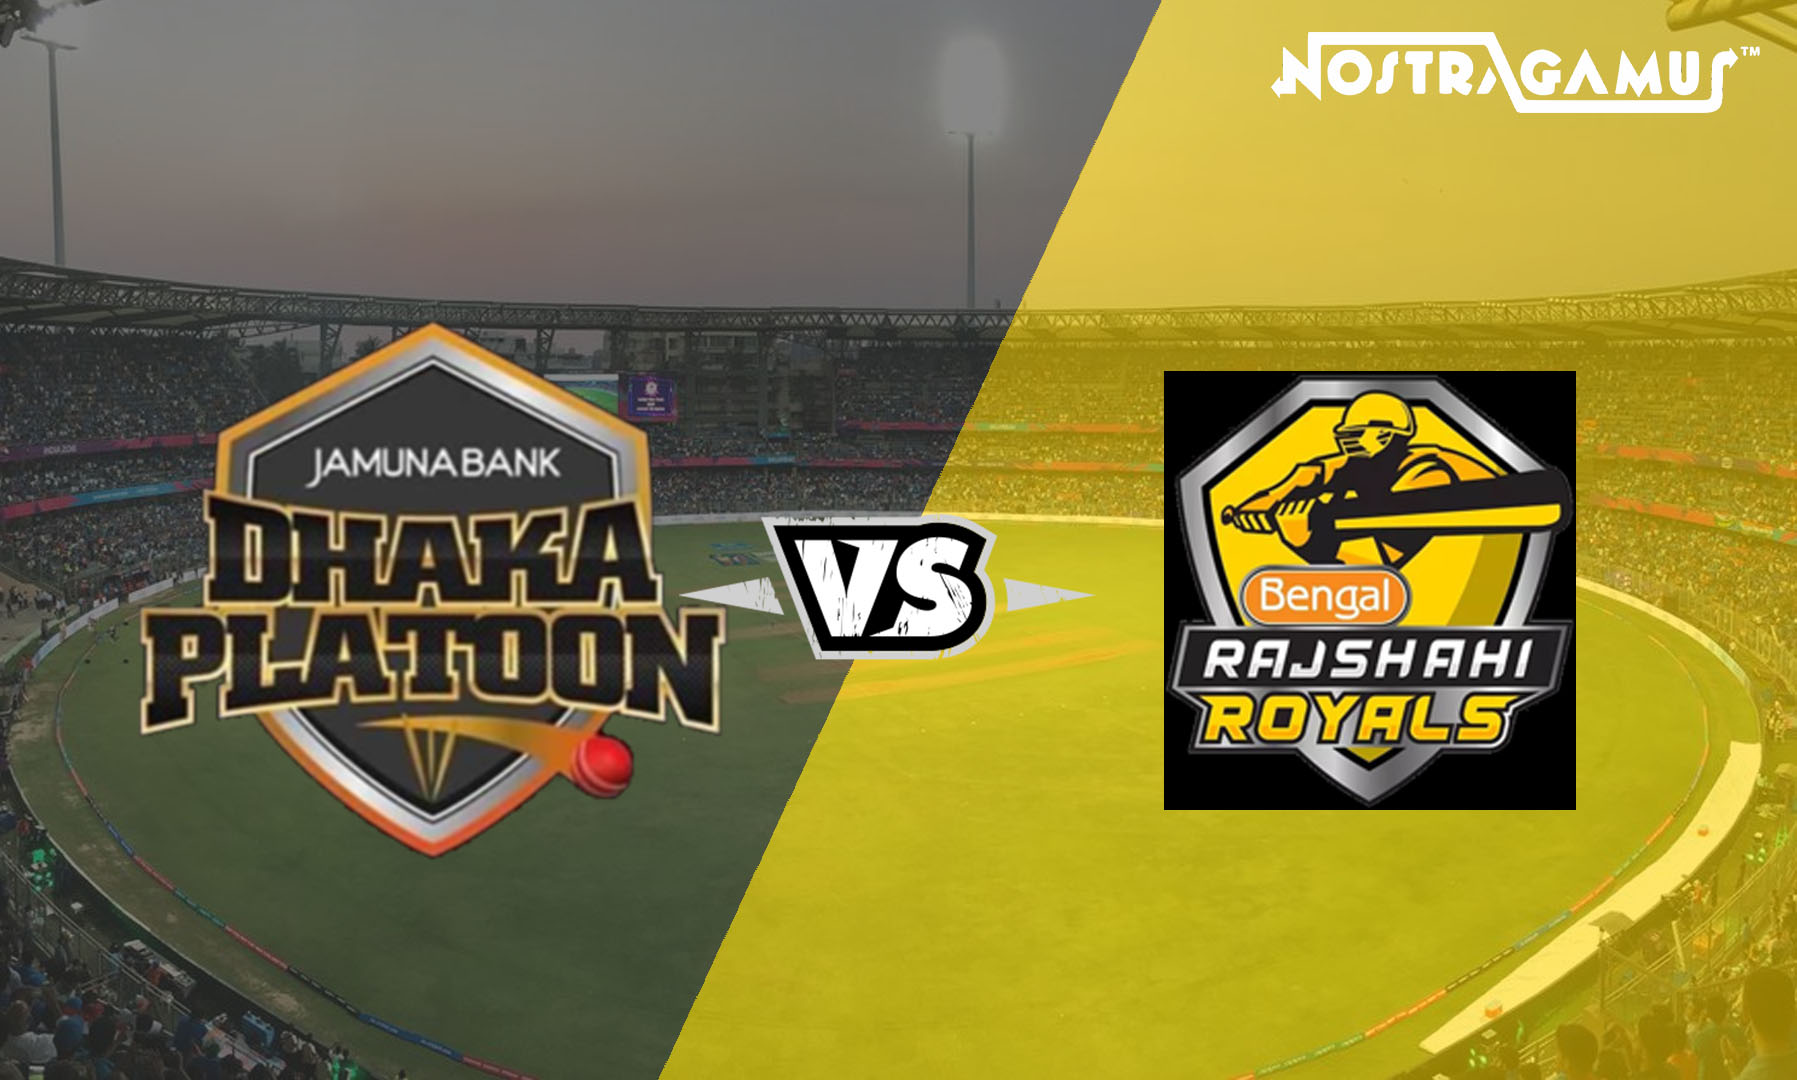 BPL 2019 Match Prediction: Dhaka Platoon vs Rajshahi Royals